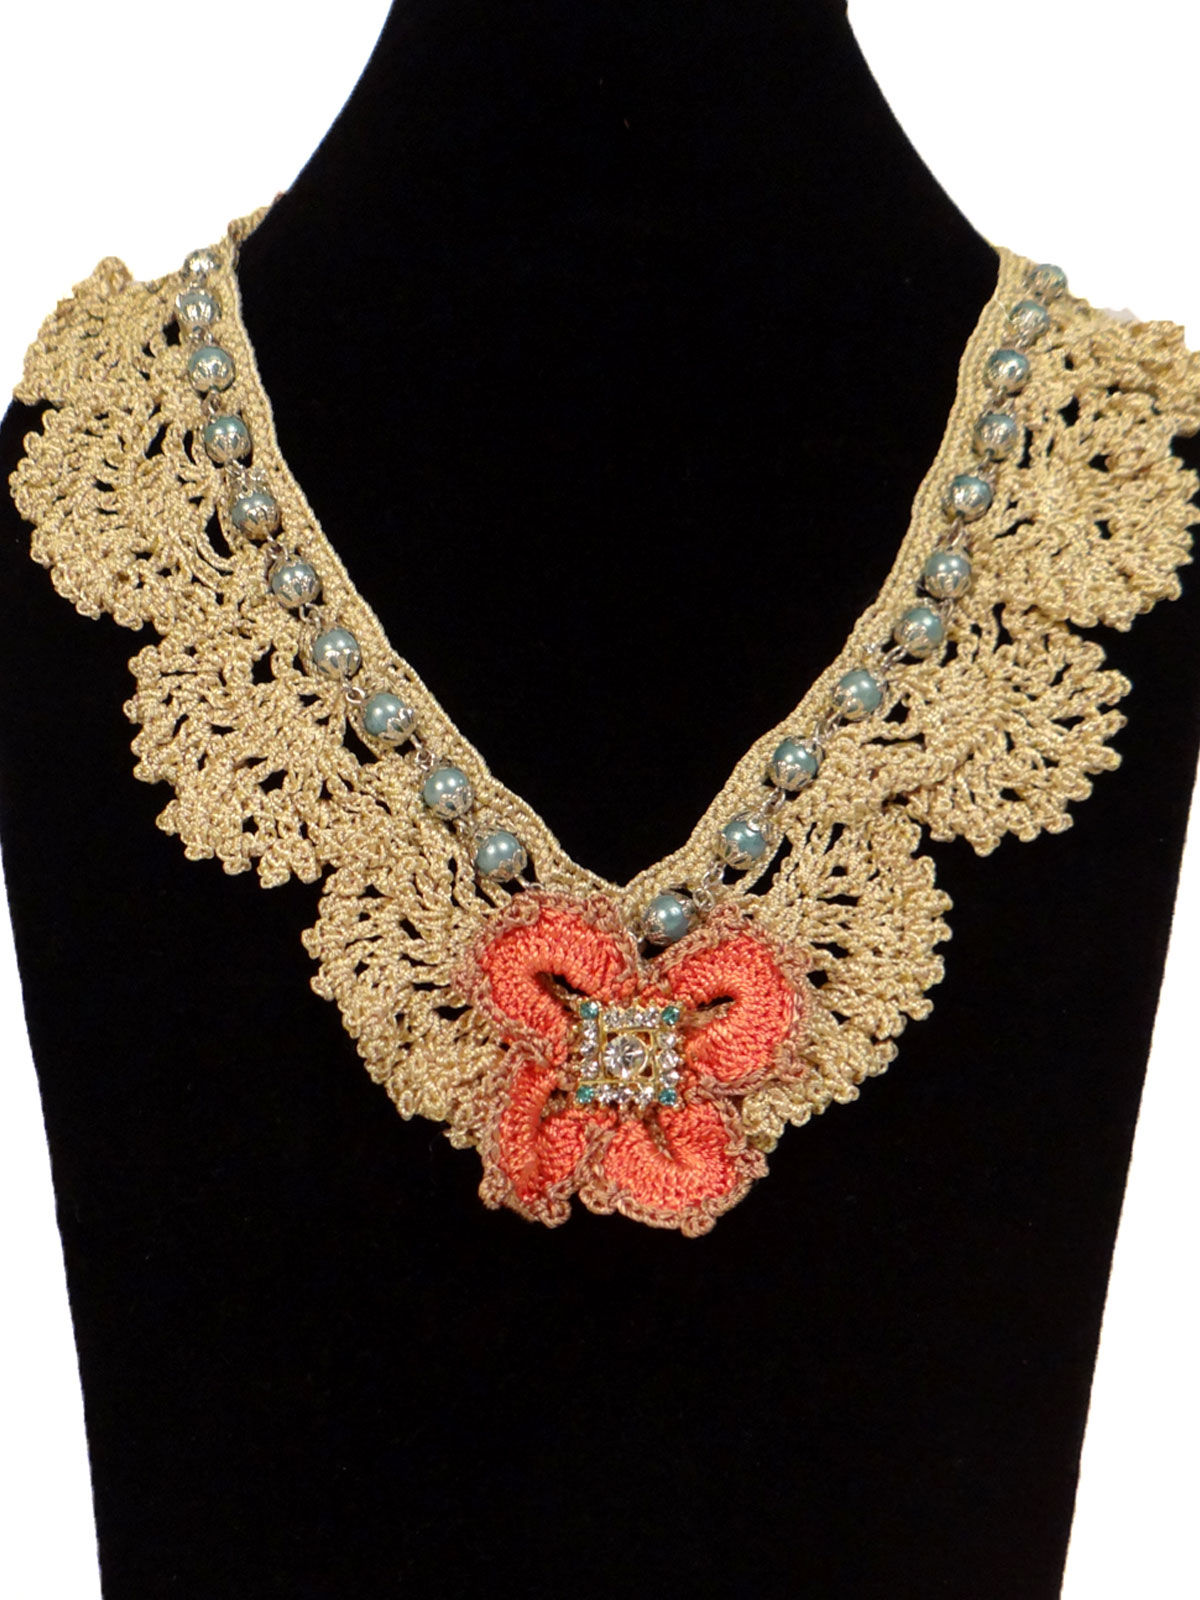 Beige crochet fabric necklace with  pearl beads in the lining